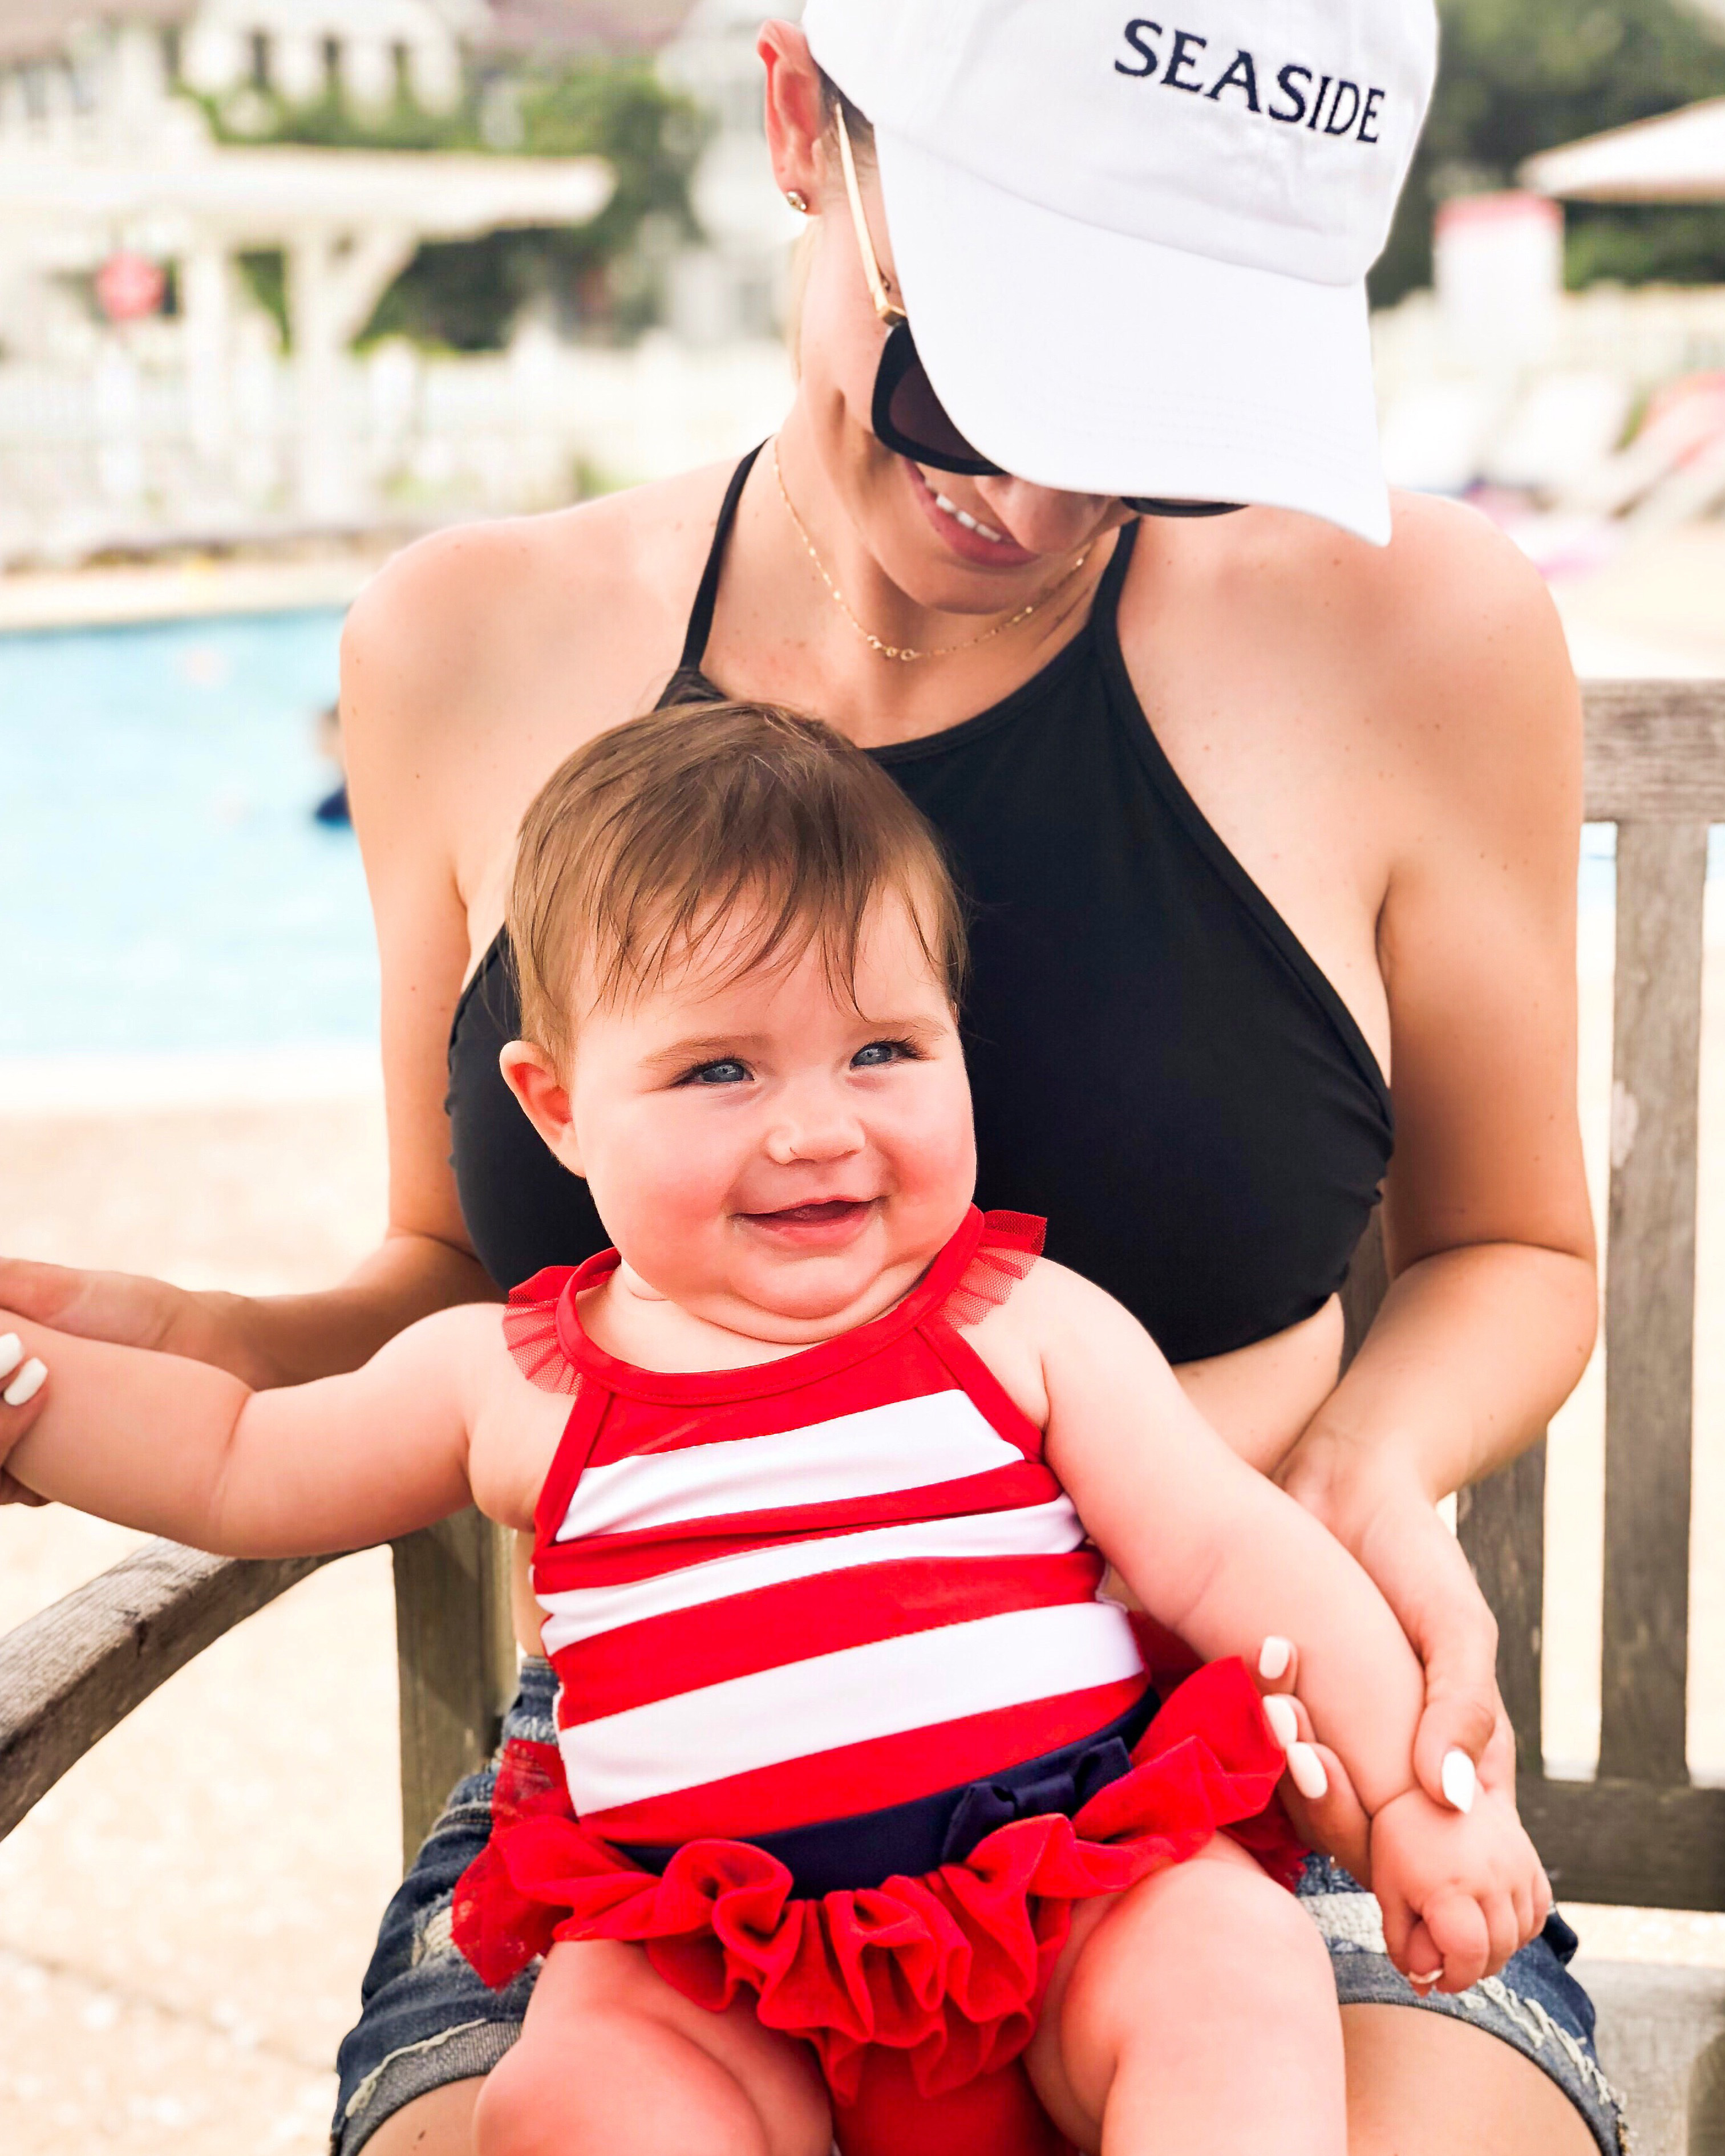 Angela Lanter with daughter, MacKenlee Lanter on vacation